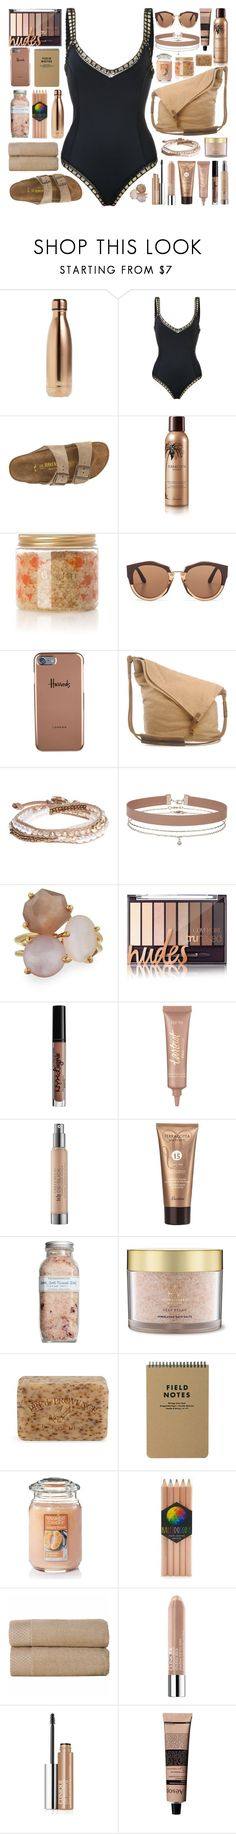 """My sweet love, won't you pull me through? Everywhere I look I catch a glimpse of you."" by povring ❤ liked on Polyvore featuring S'well, kiini, Birkenstock, Guerlain, Bodhi, Marni, Harrods, Lonna & Lilly, Miss Selfridge and Ippolita"